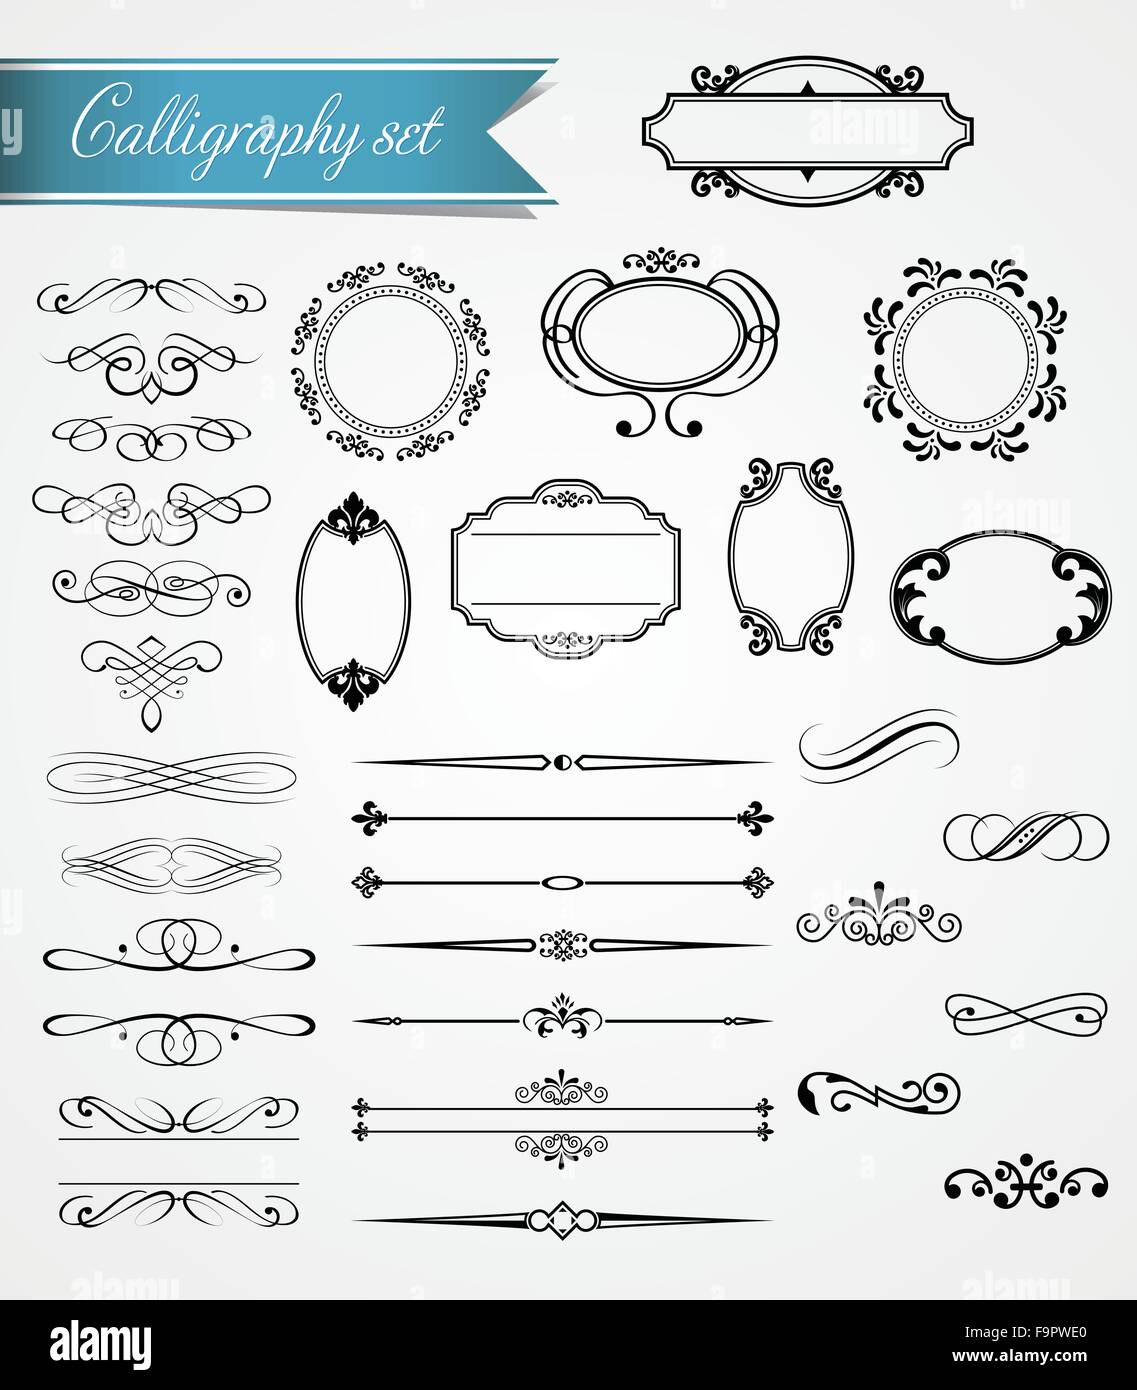 Vector calligraphy and vintage frames collection - Stock Image